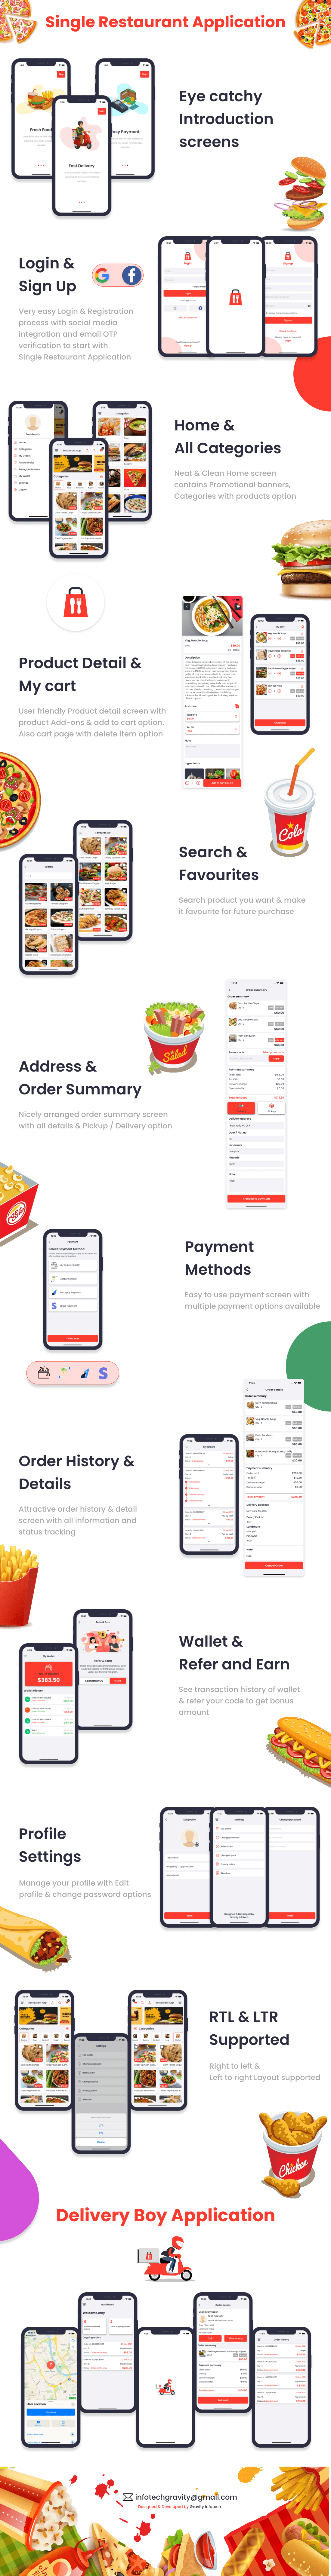 Single restaurant iOS food ordering app with Delivery Boy and Admin Panel - 9